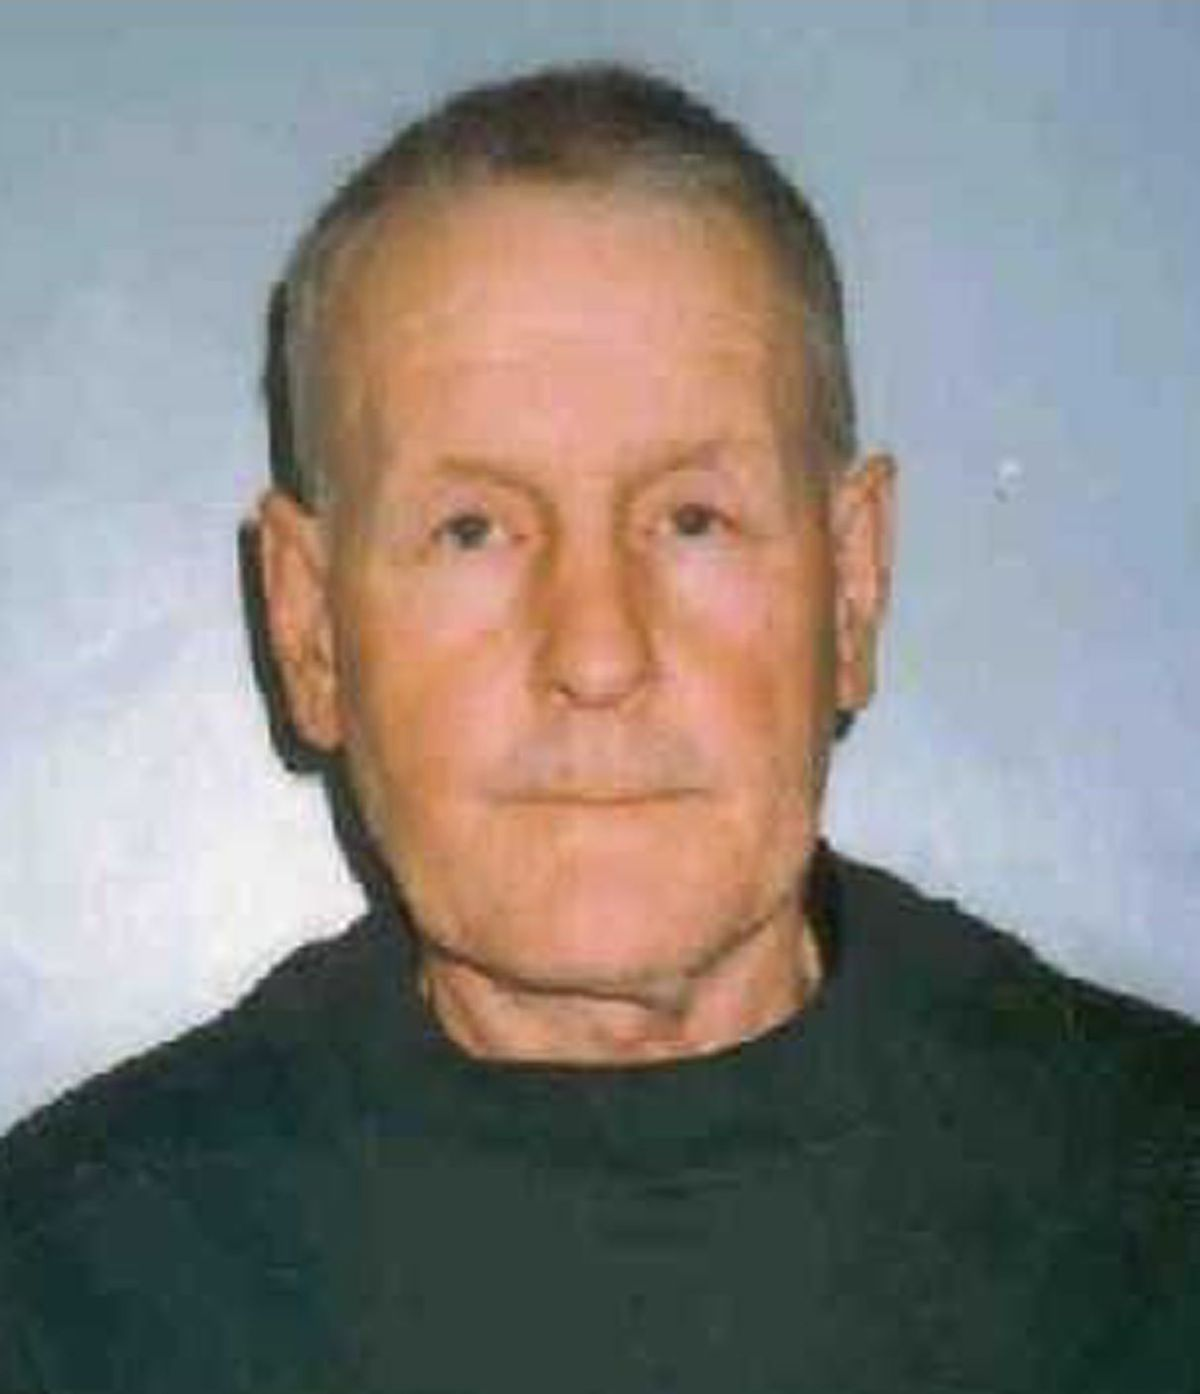 Brian Field was questioned over the boys' disappearance in 2006